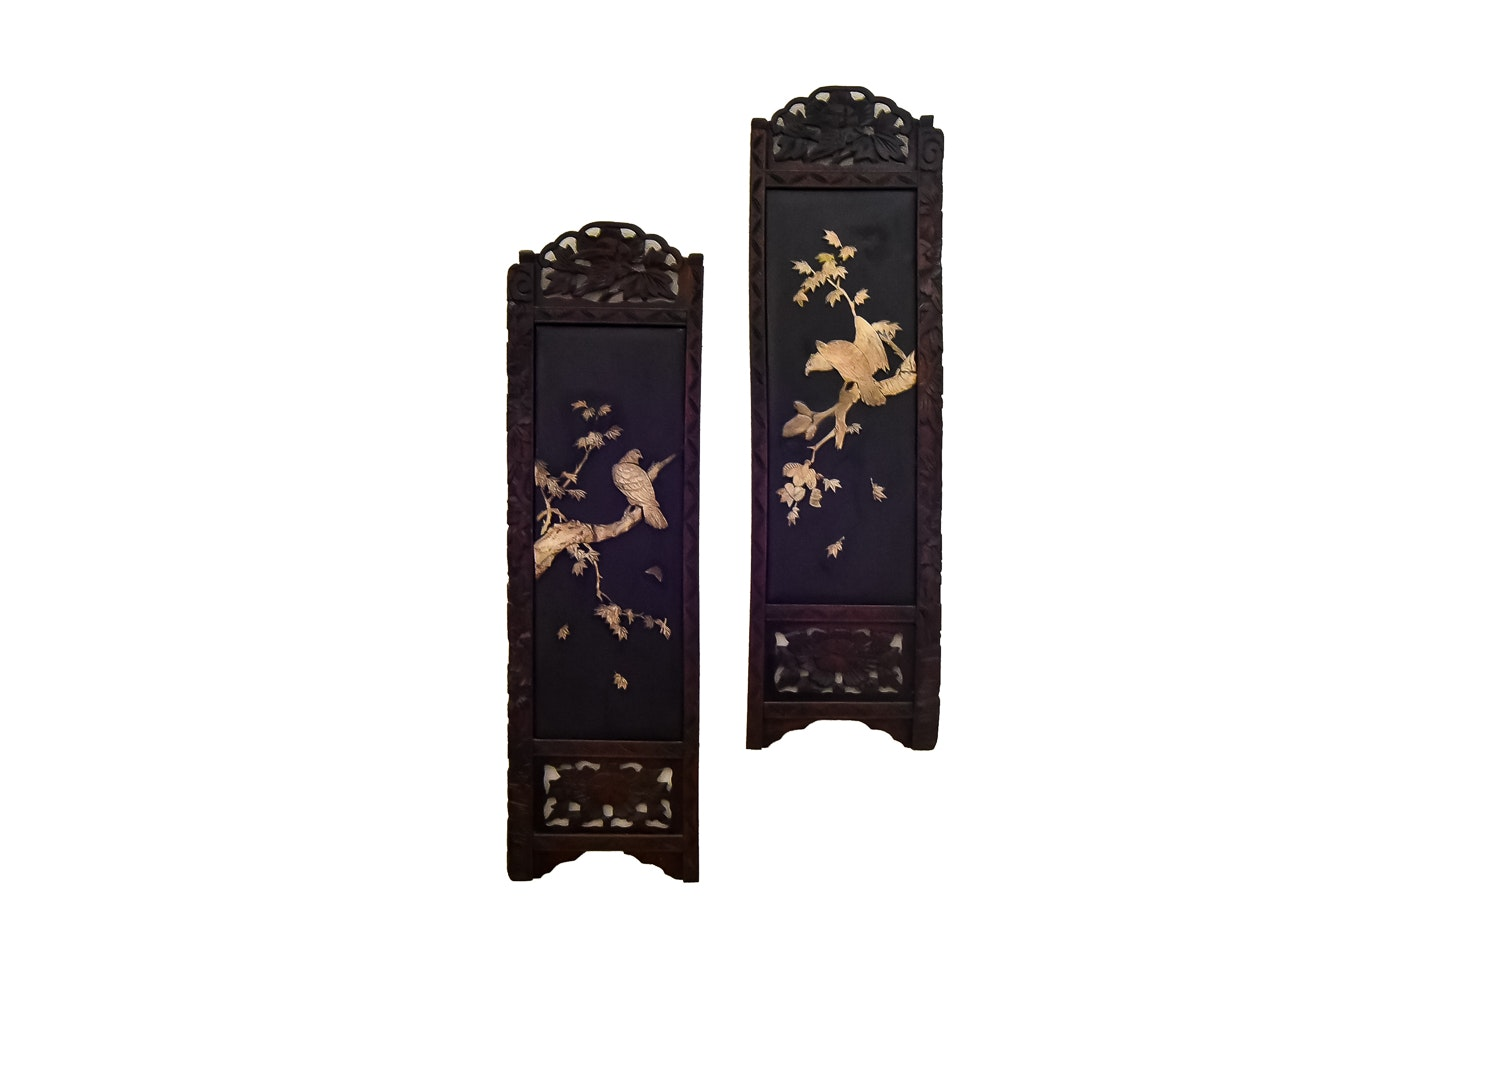 Pair Of Chinoiserie Lacquer Carved Wood Decorative Wall Panels